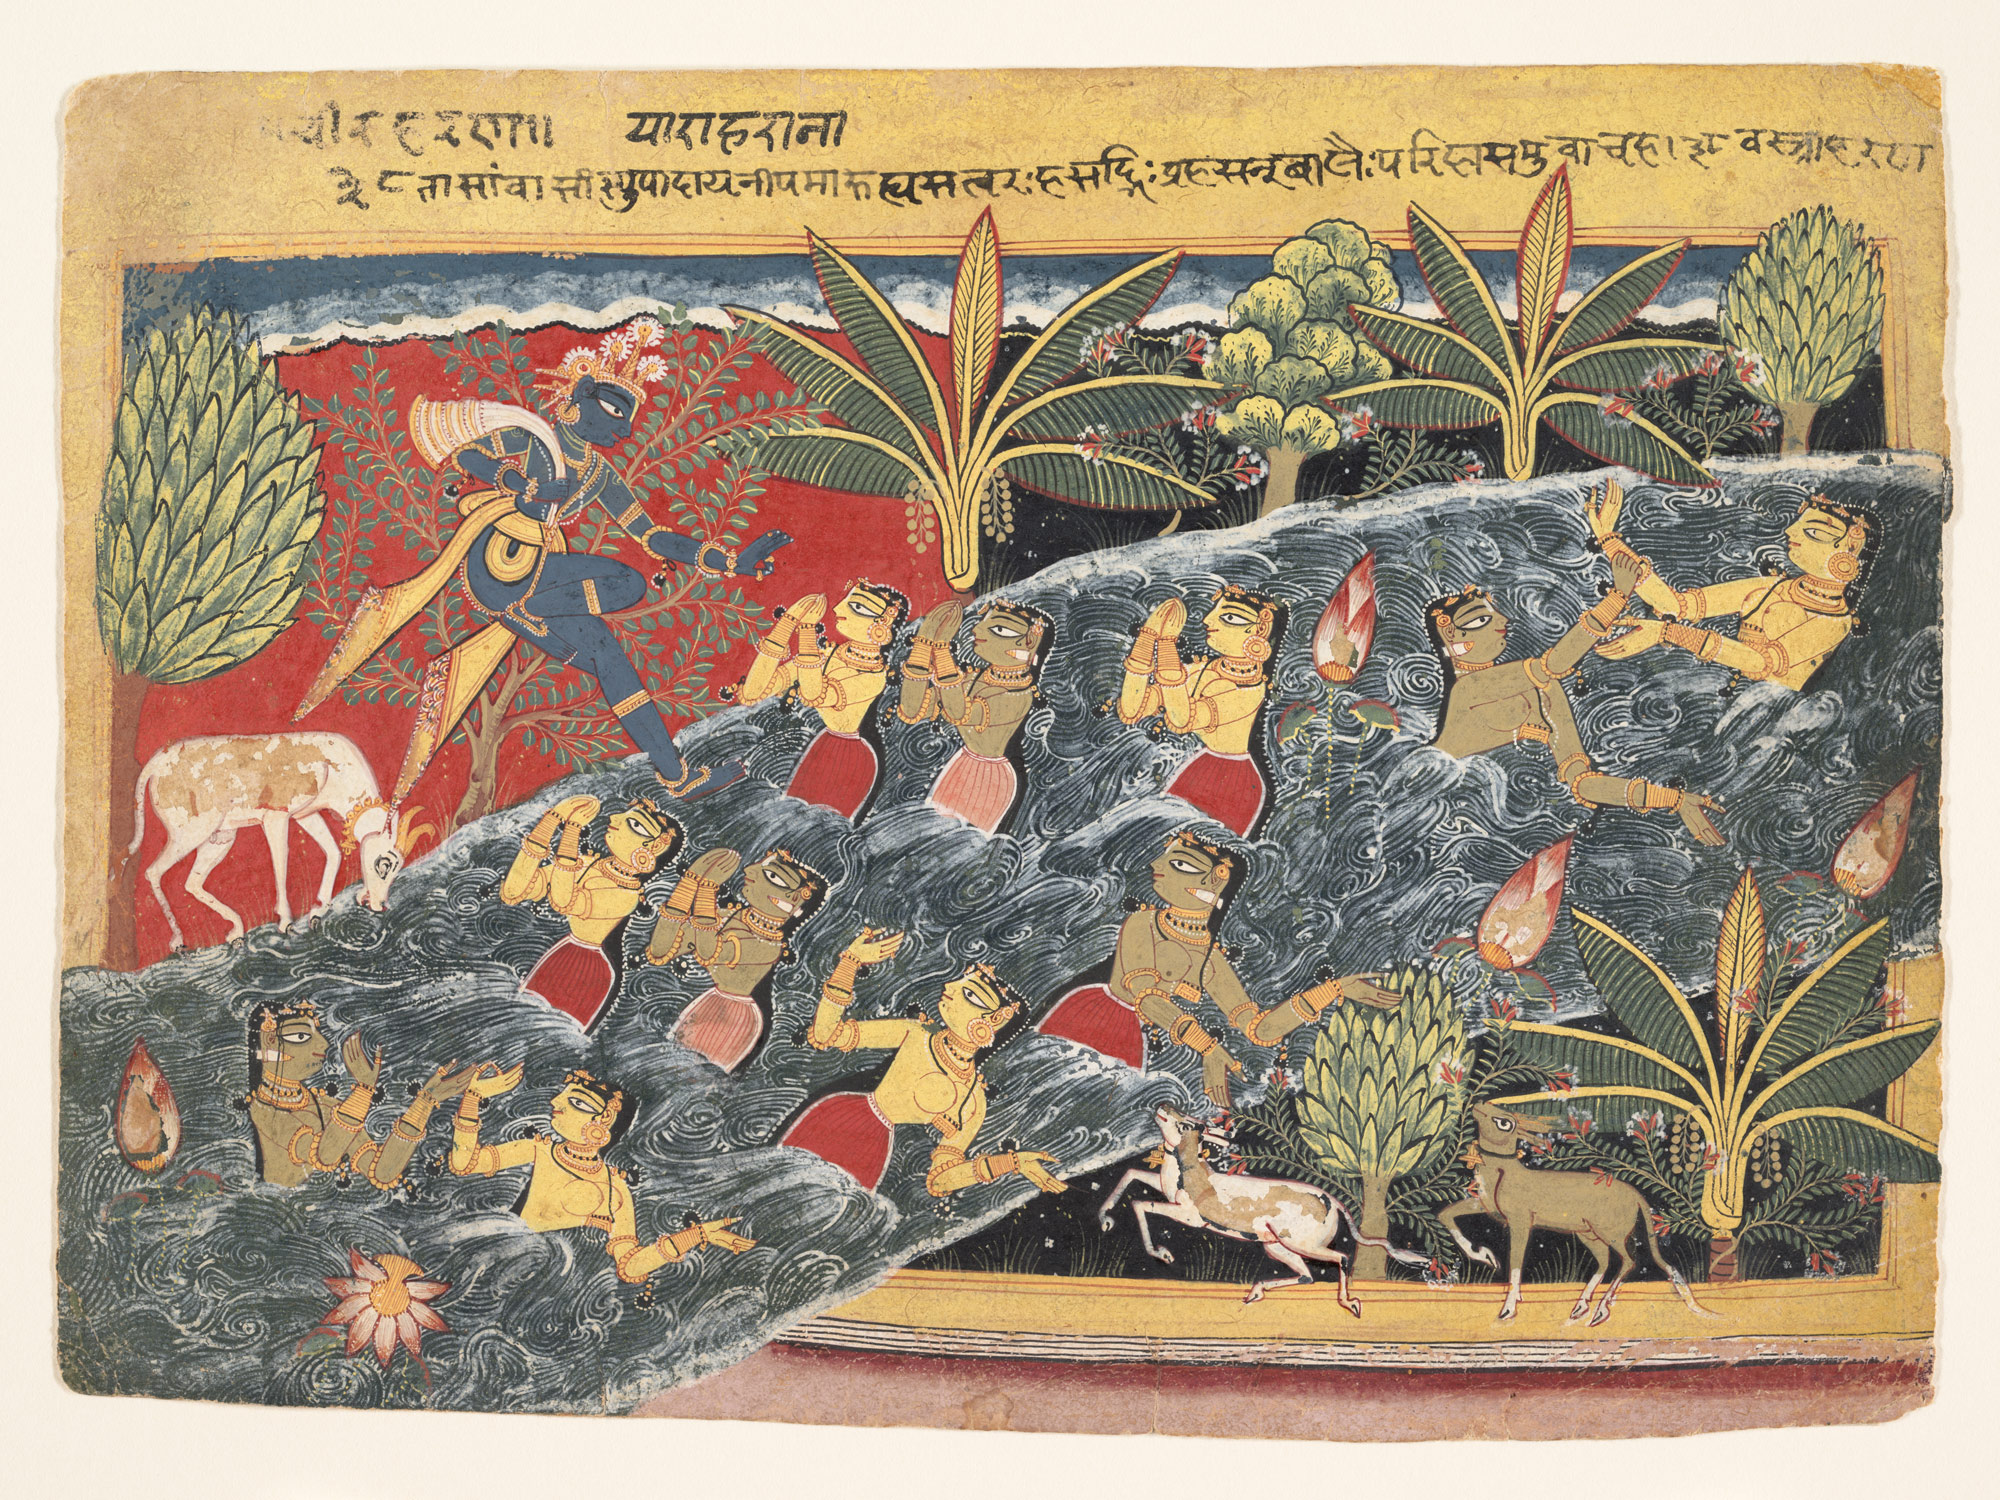 The Gopis Plead with Krishna to Return Their Clothing: Folio from Isarda Bhagavata Purana